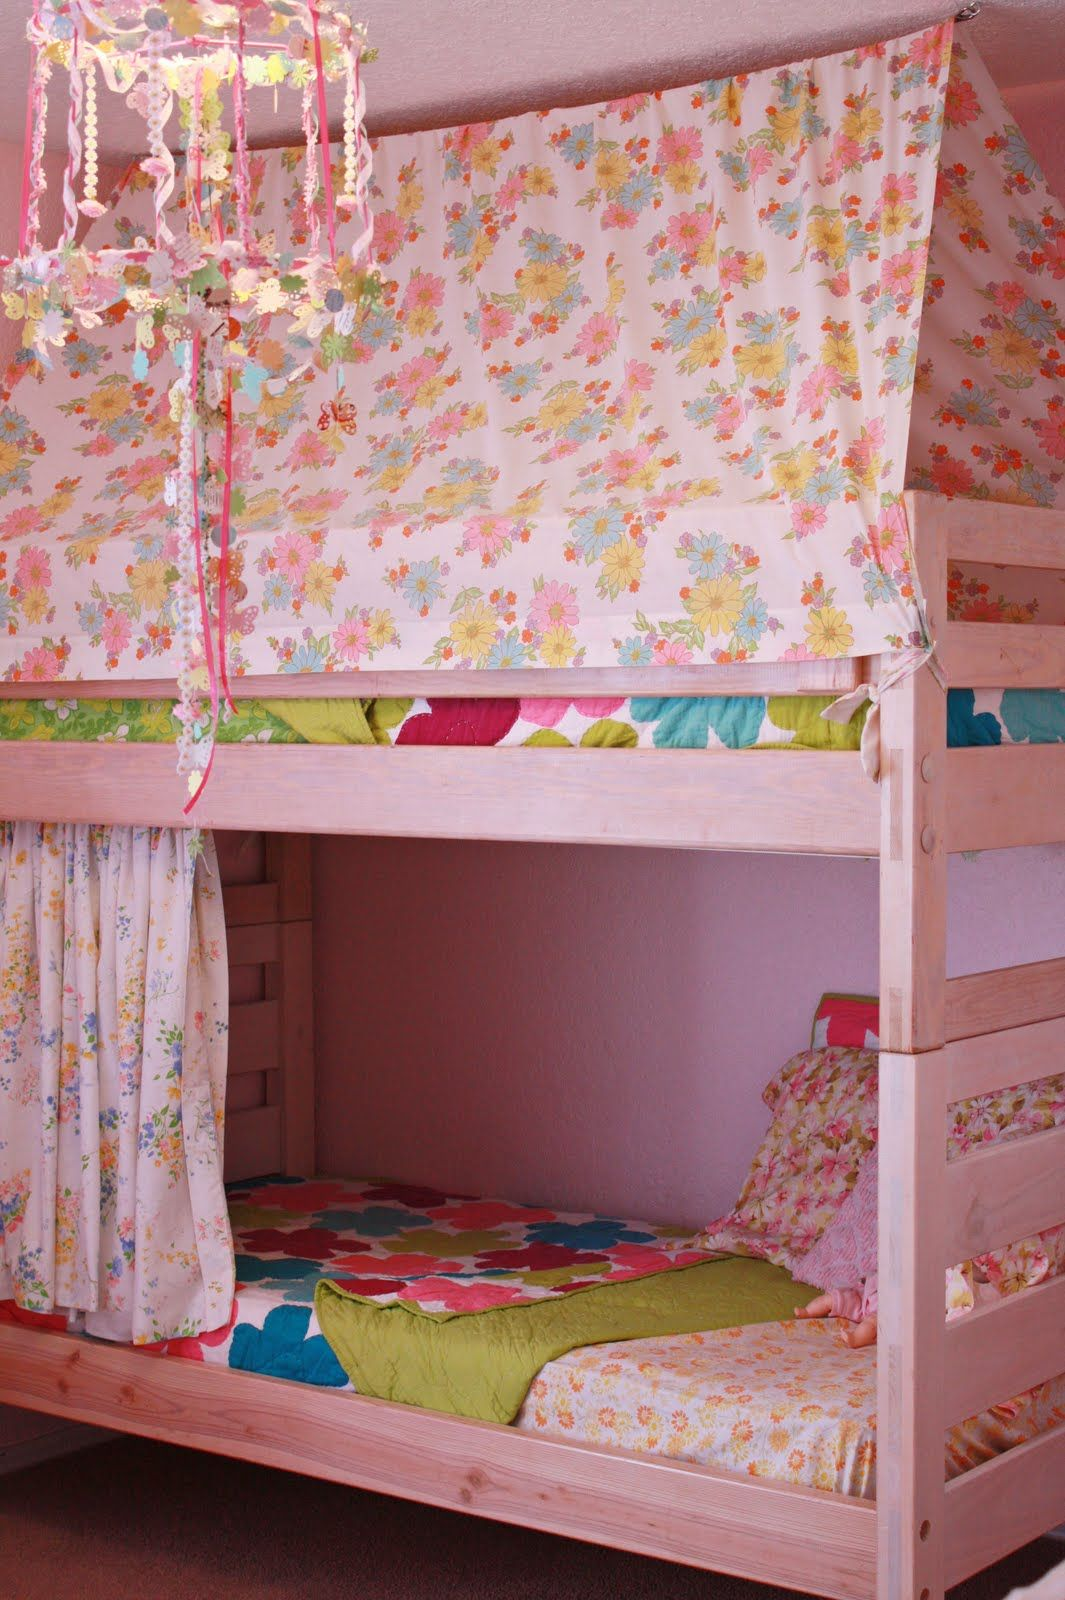 Delightful Distractions Home Sweet Home The Girls Room Tour Cool Bunk Beds Bunk Bed Tent Kids Bunk Beds